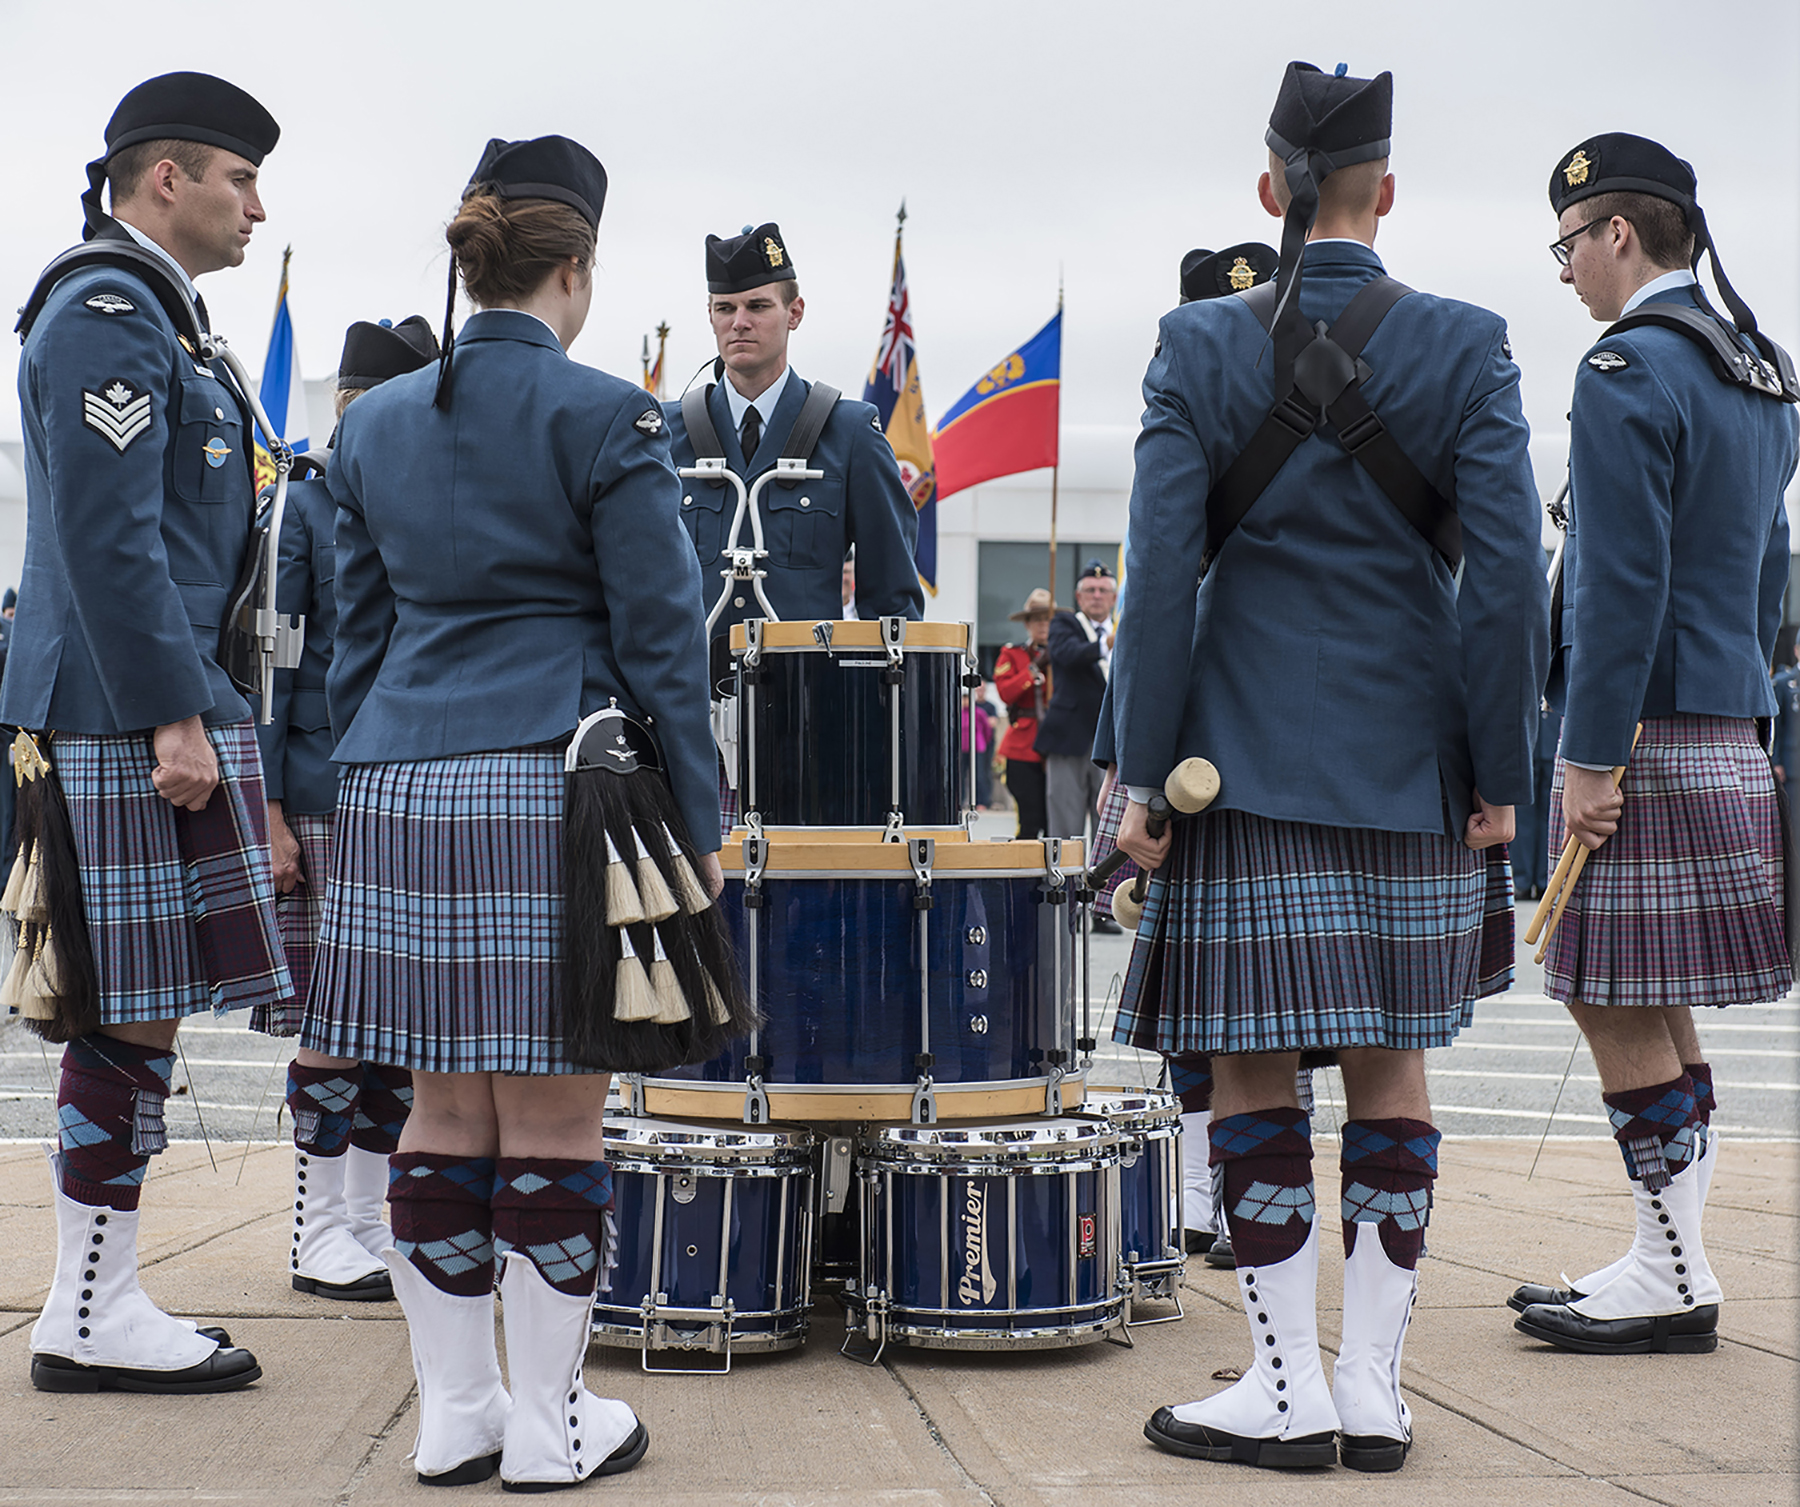 From left, clockwise, 12 Wing Pipes and Drums members Sergeant Marc Maloney, Major (retired) Pauline Quaghbeur, Sub-Lieutenant Jeremy Gaulin, Krista McLellan, Matthew Orlando, Aviator Keenan Weaver, and Beth MacDonald form a circle around their stacked drums in preparation for the September 17, 2017, Battle of Britain ceremony held at 12 Wing Shearwater, Nova Scotia. PHOTO: Corporal Anthony Laviolette, SW04-2017-0250-014